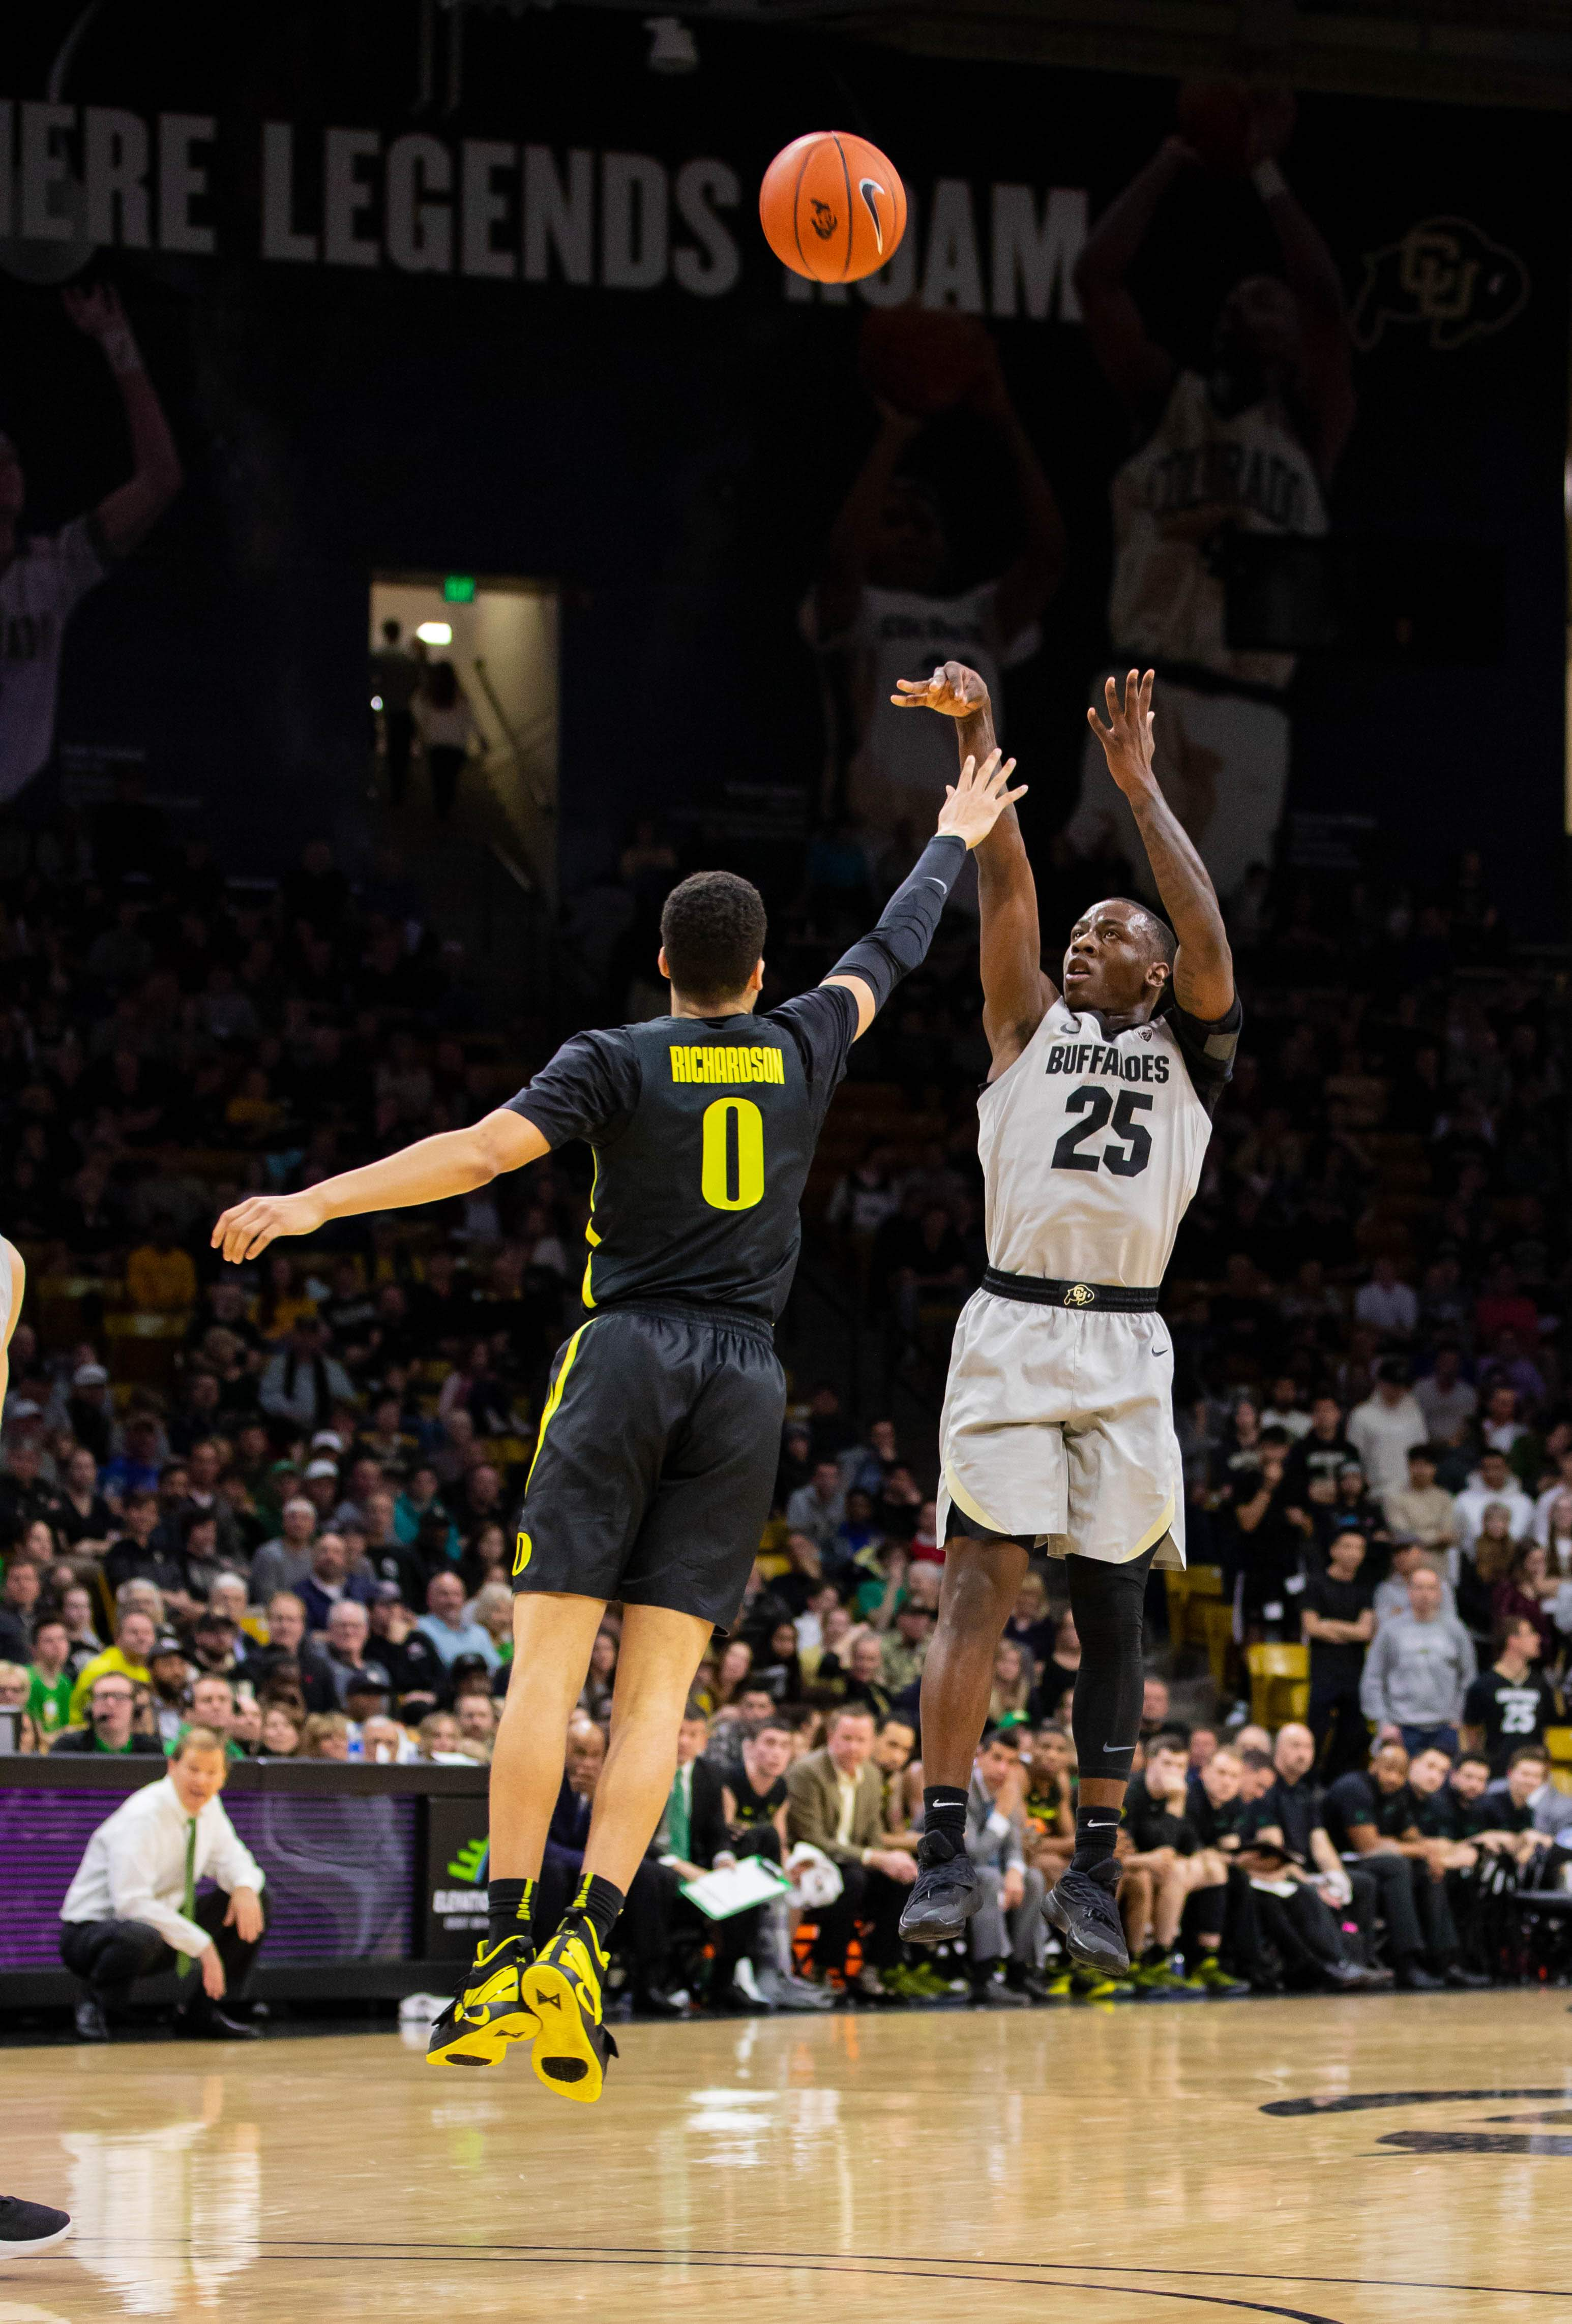 Tyler Bey and the Buffaloes dominate Ducks in 73-51 win